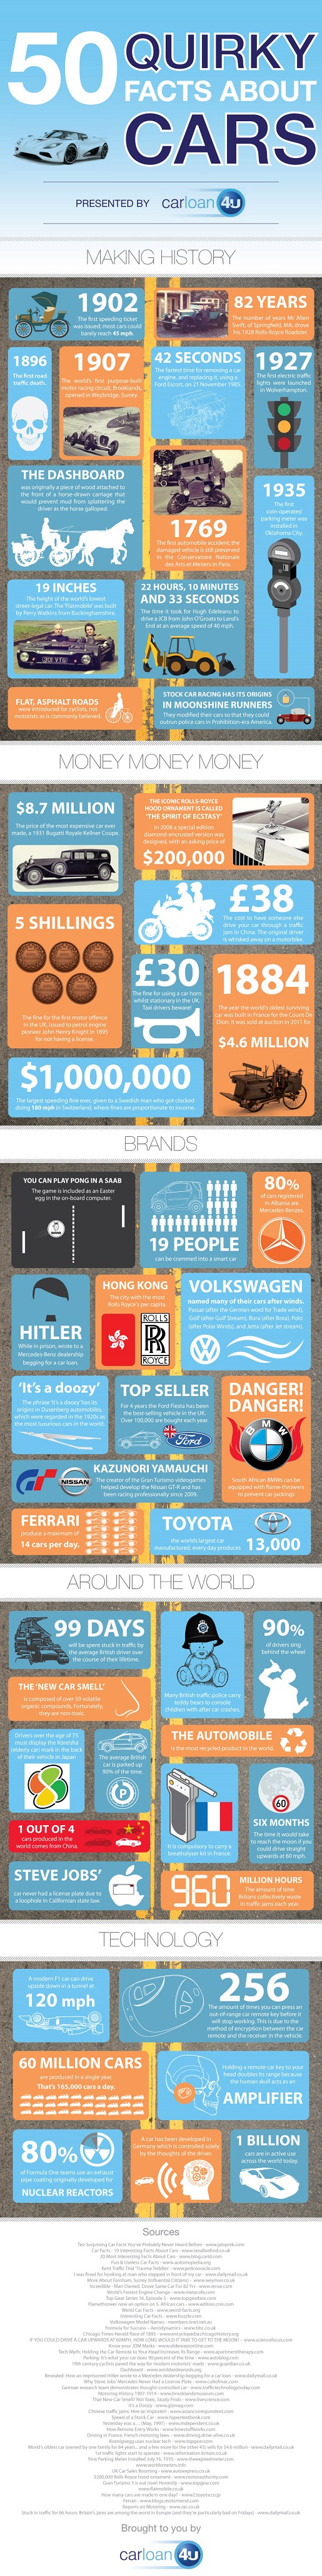 Things to Know About Cars-Infographic